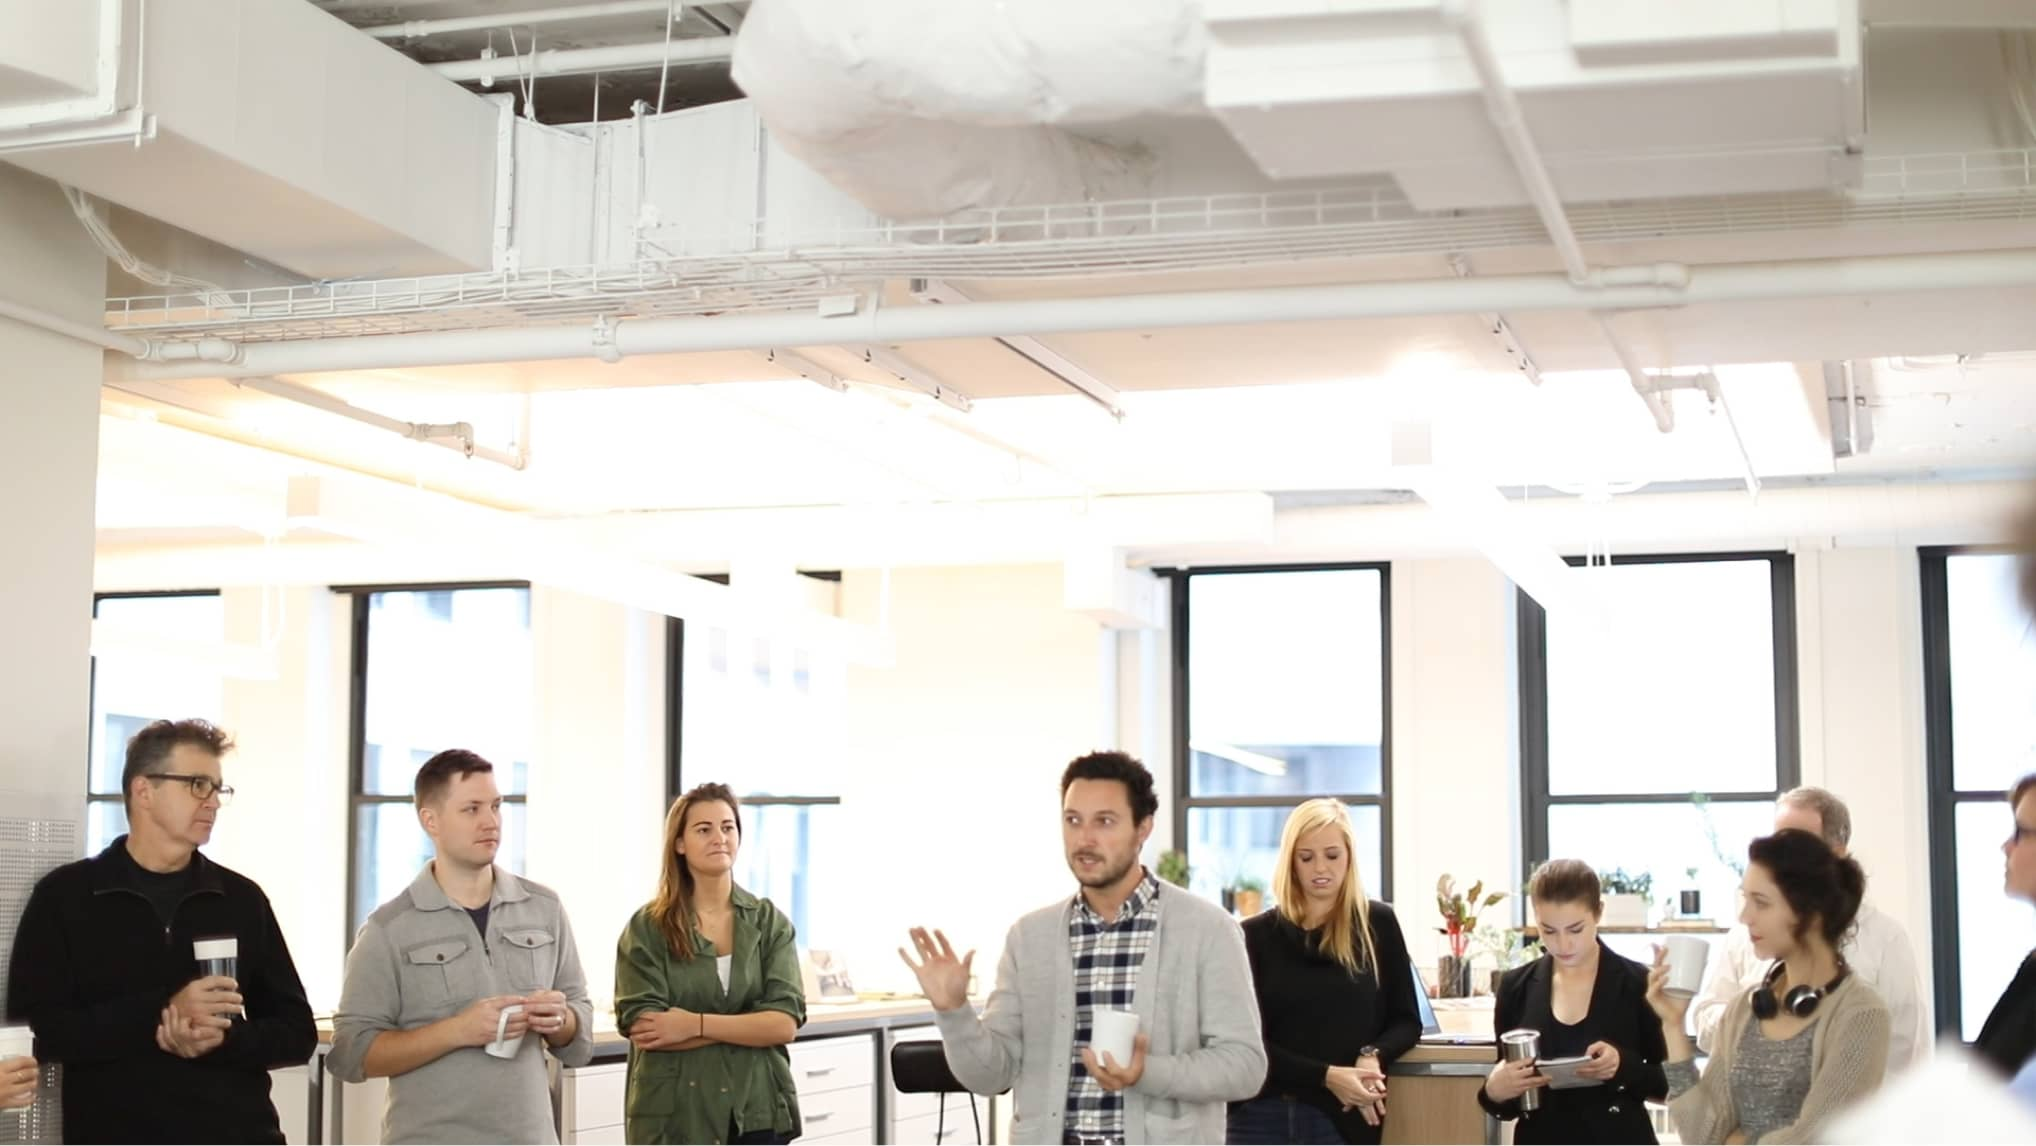 At the HKS Chicago office, Dr. Tommy Zakrzewski describes the components of our 'Living Lab' — a workplace proven to enhance employee health and well-being with sustainable, high-performance design.